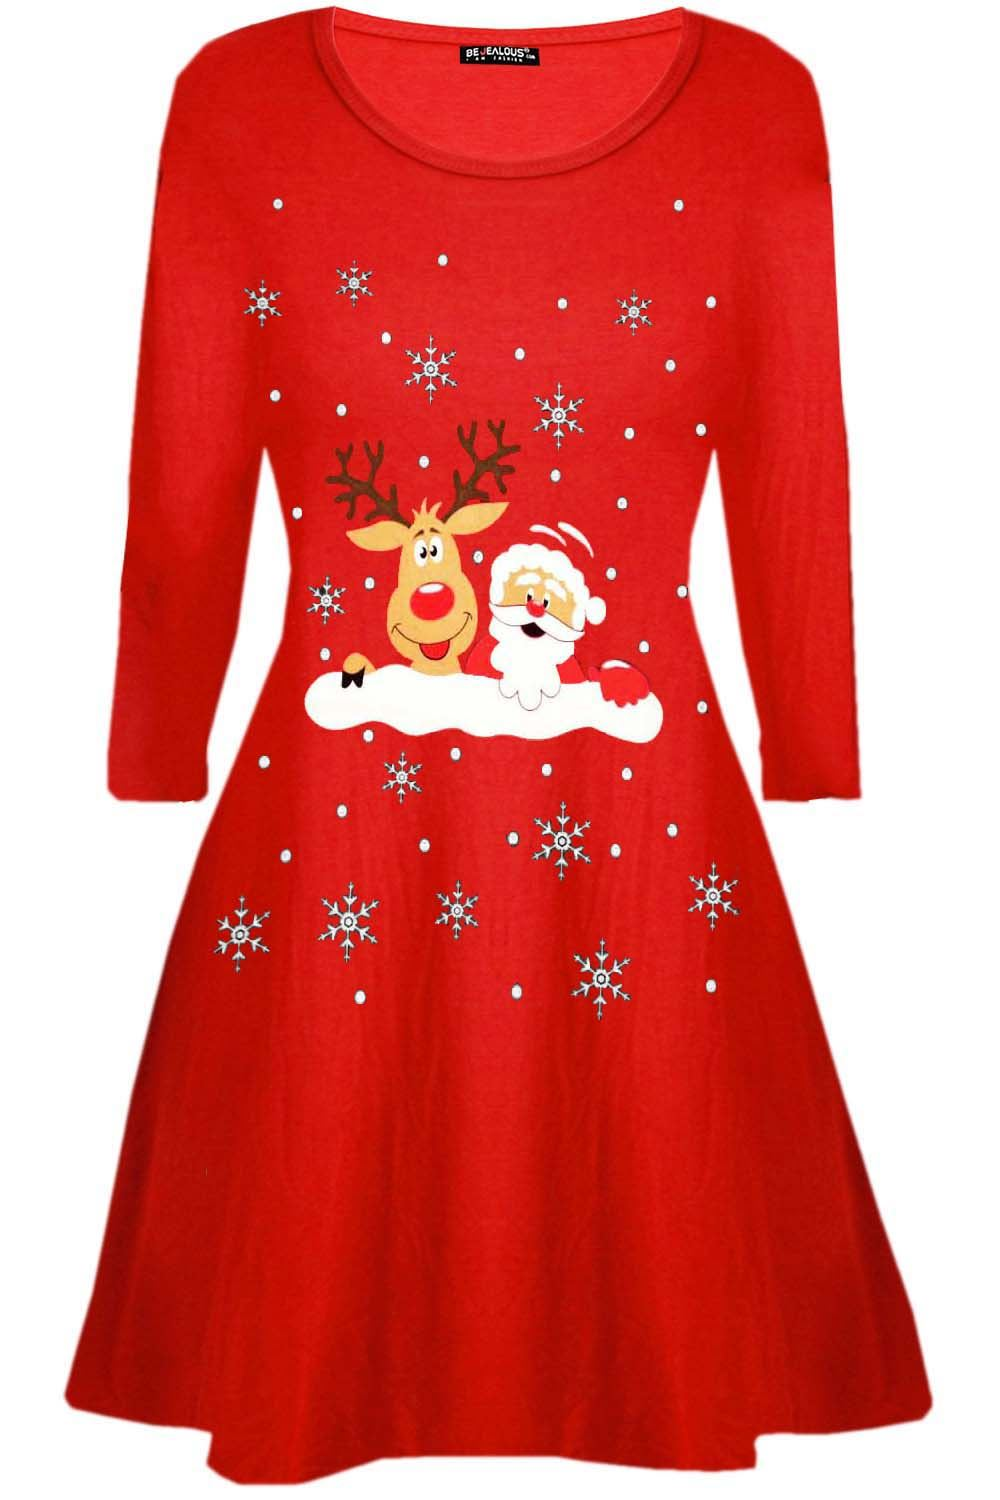 Womens-Ladies-Kids-Girls-Christmas-Xmas-Santa-Reindeer-Flared-Swing-Mini-Dress thumbnail 24